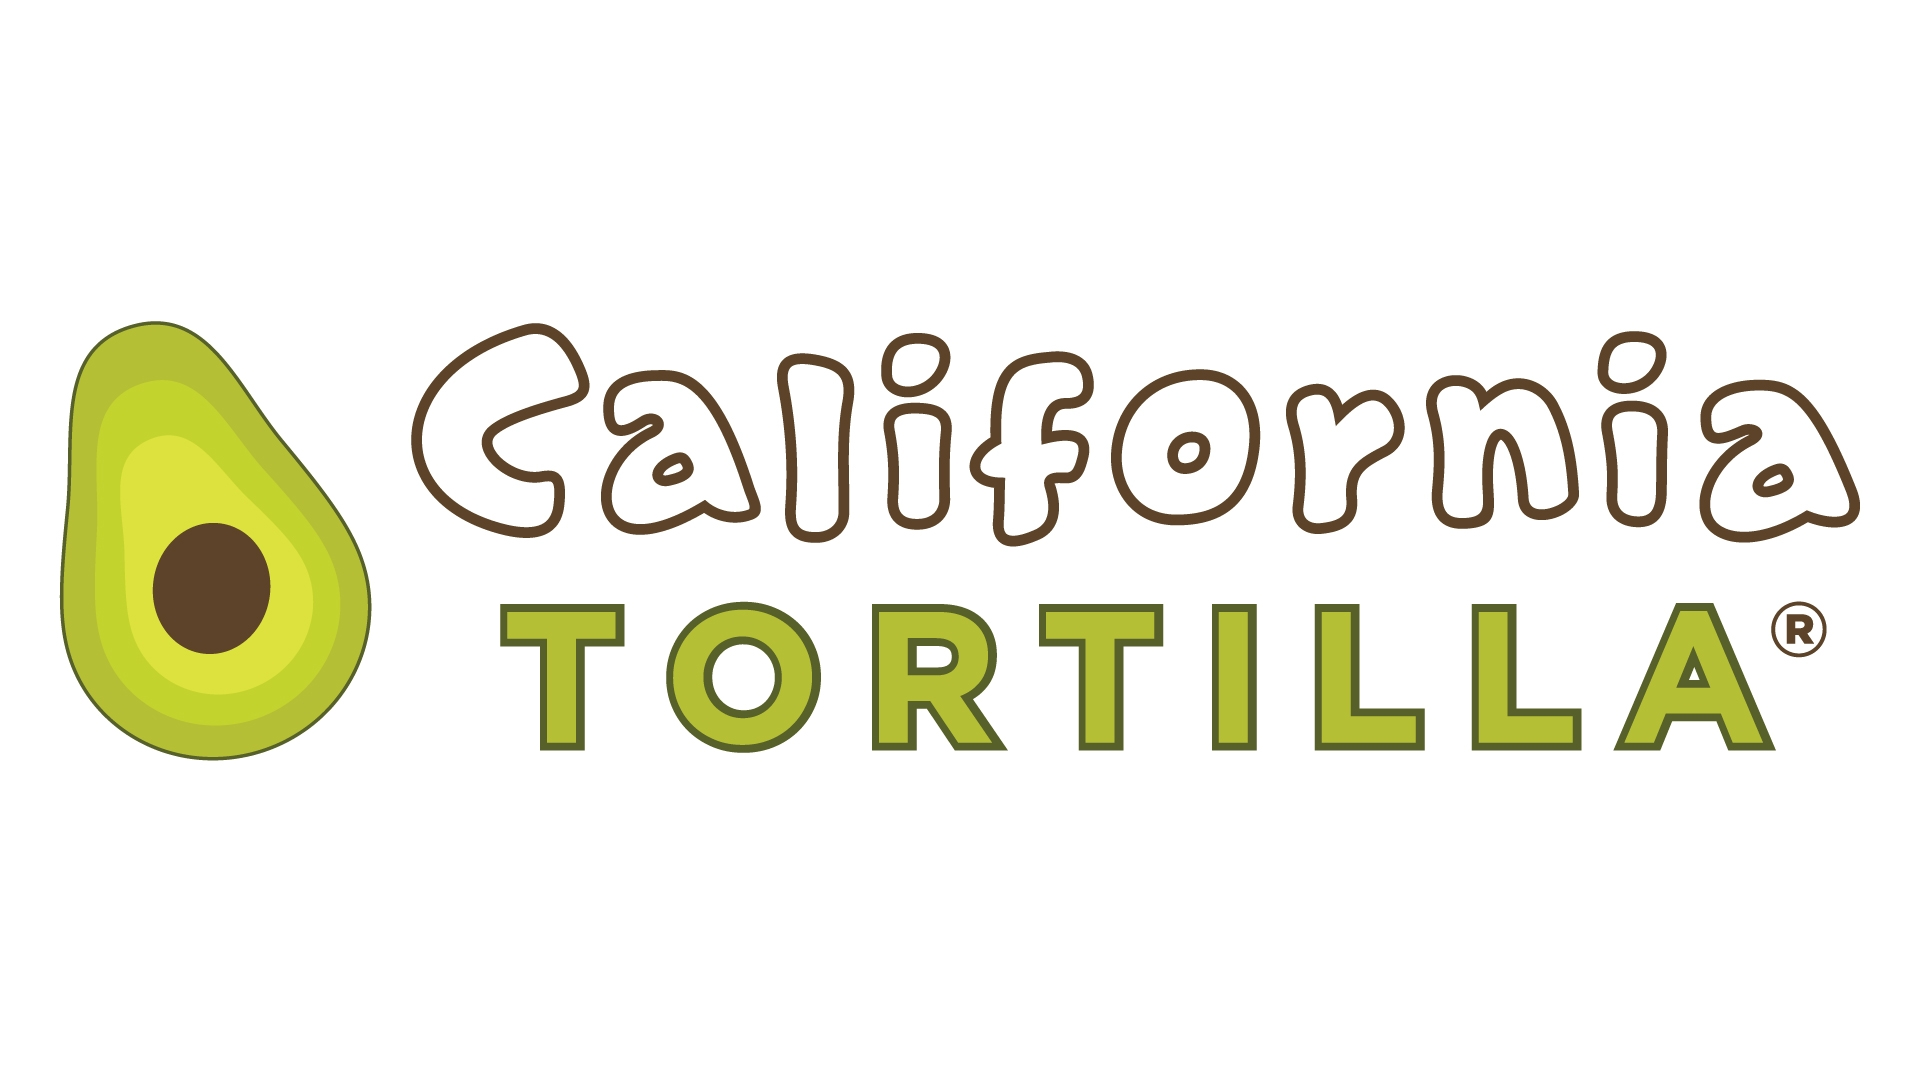 California Tortilla - Franchise of the Week